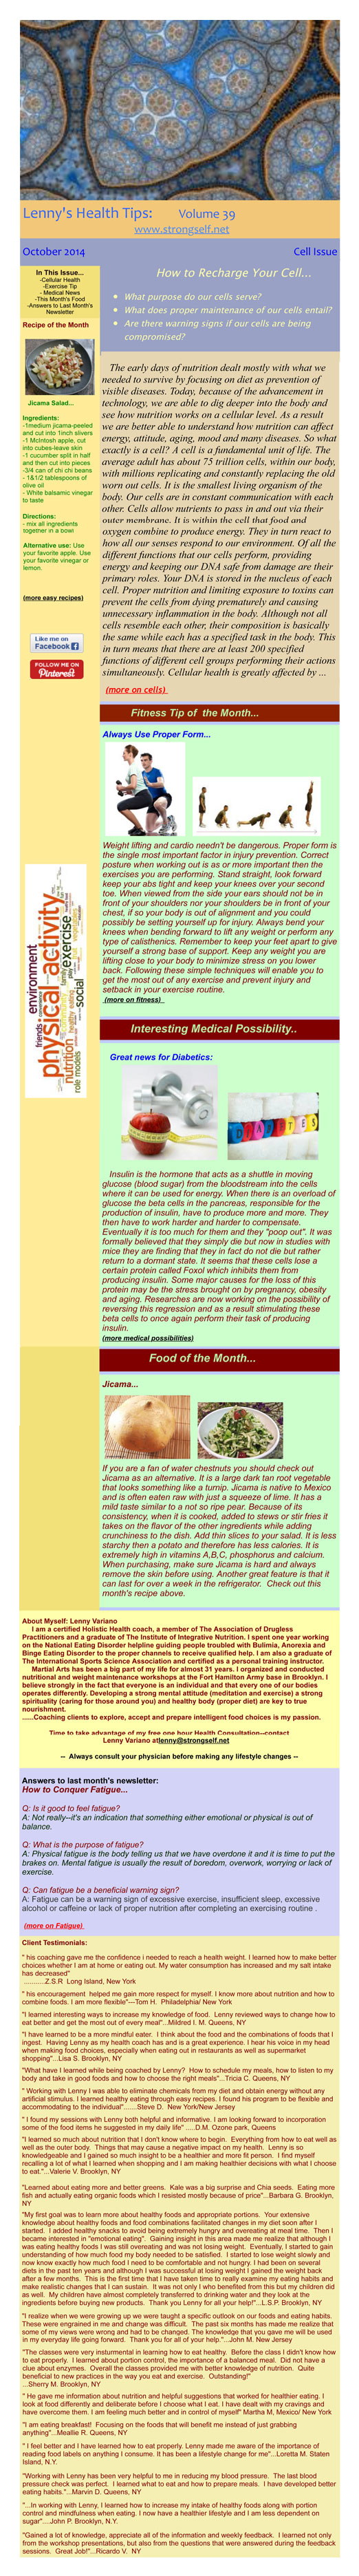 October 2014 Healthy Tips Newsletter from certified Holistic Health Counselor Lenny Variano